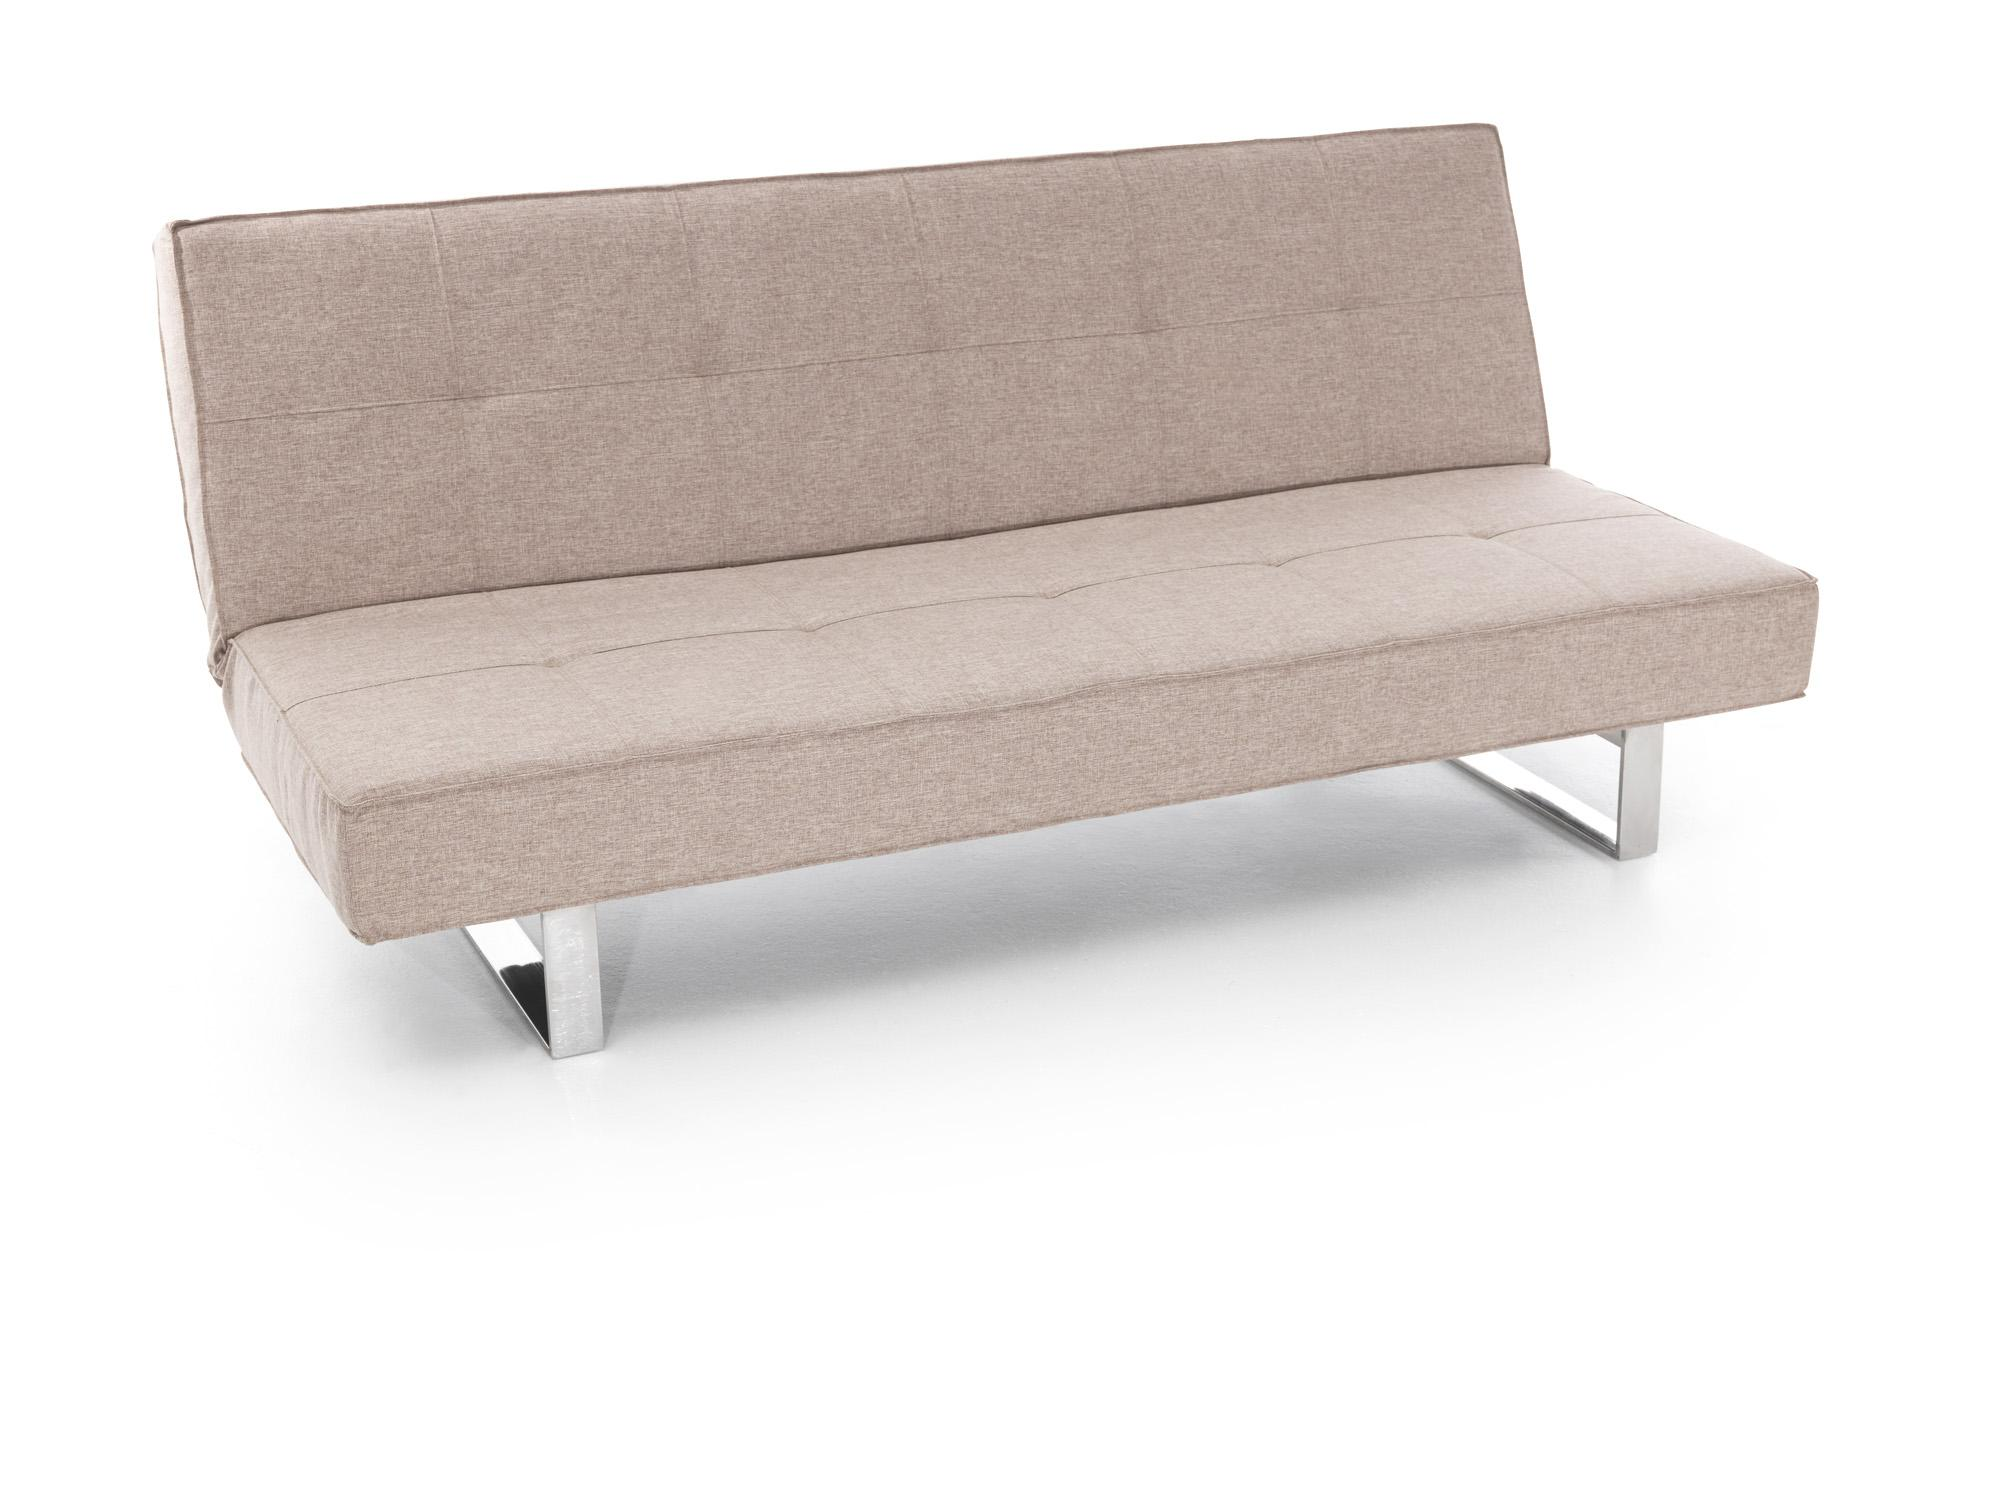 cheapest sofa deals uk rose colored top 30 click clack bed prices best